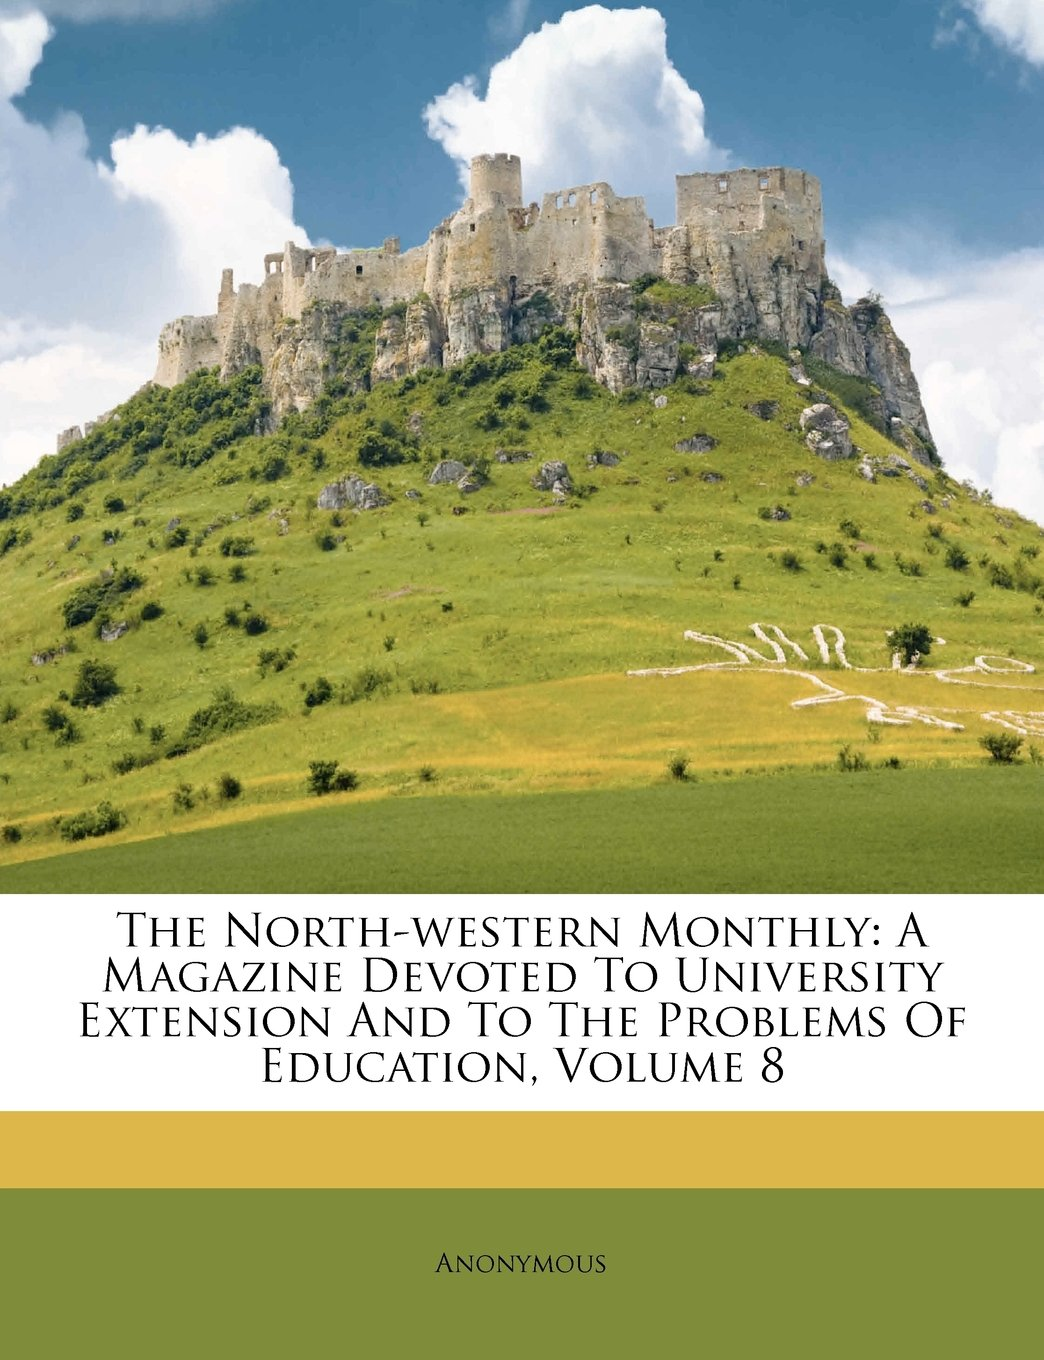 The North-western Monthly: A Magazine Devoted To University Extension And To The Problems Of Education, Volume 8 pdf epub